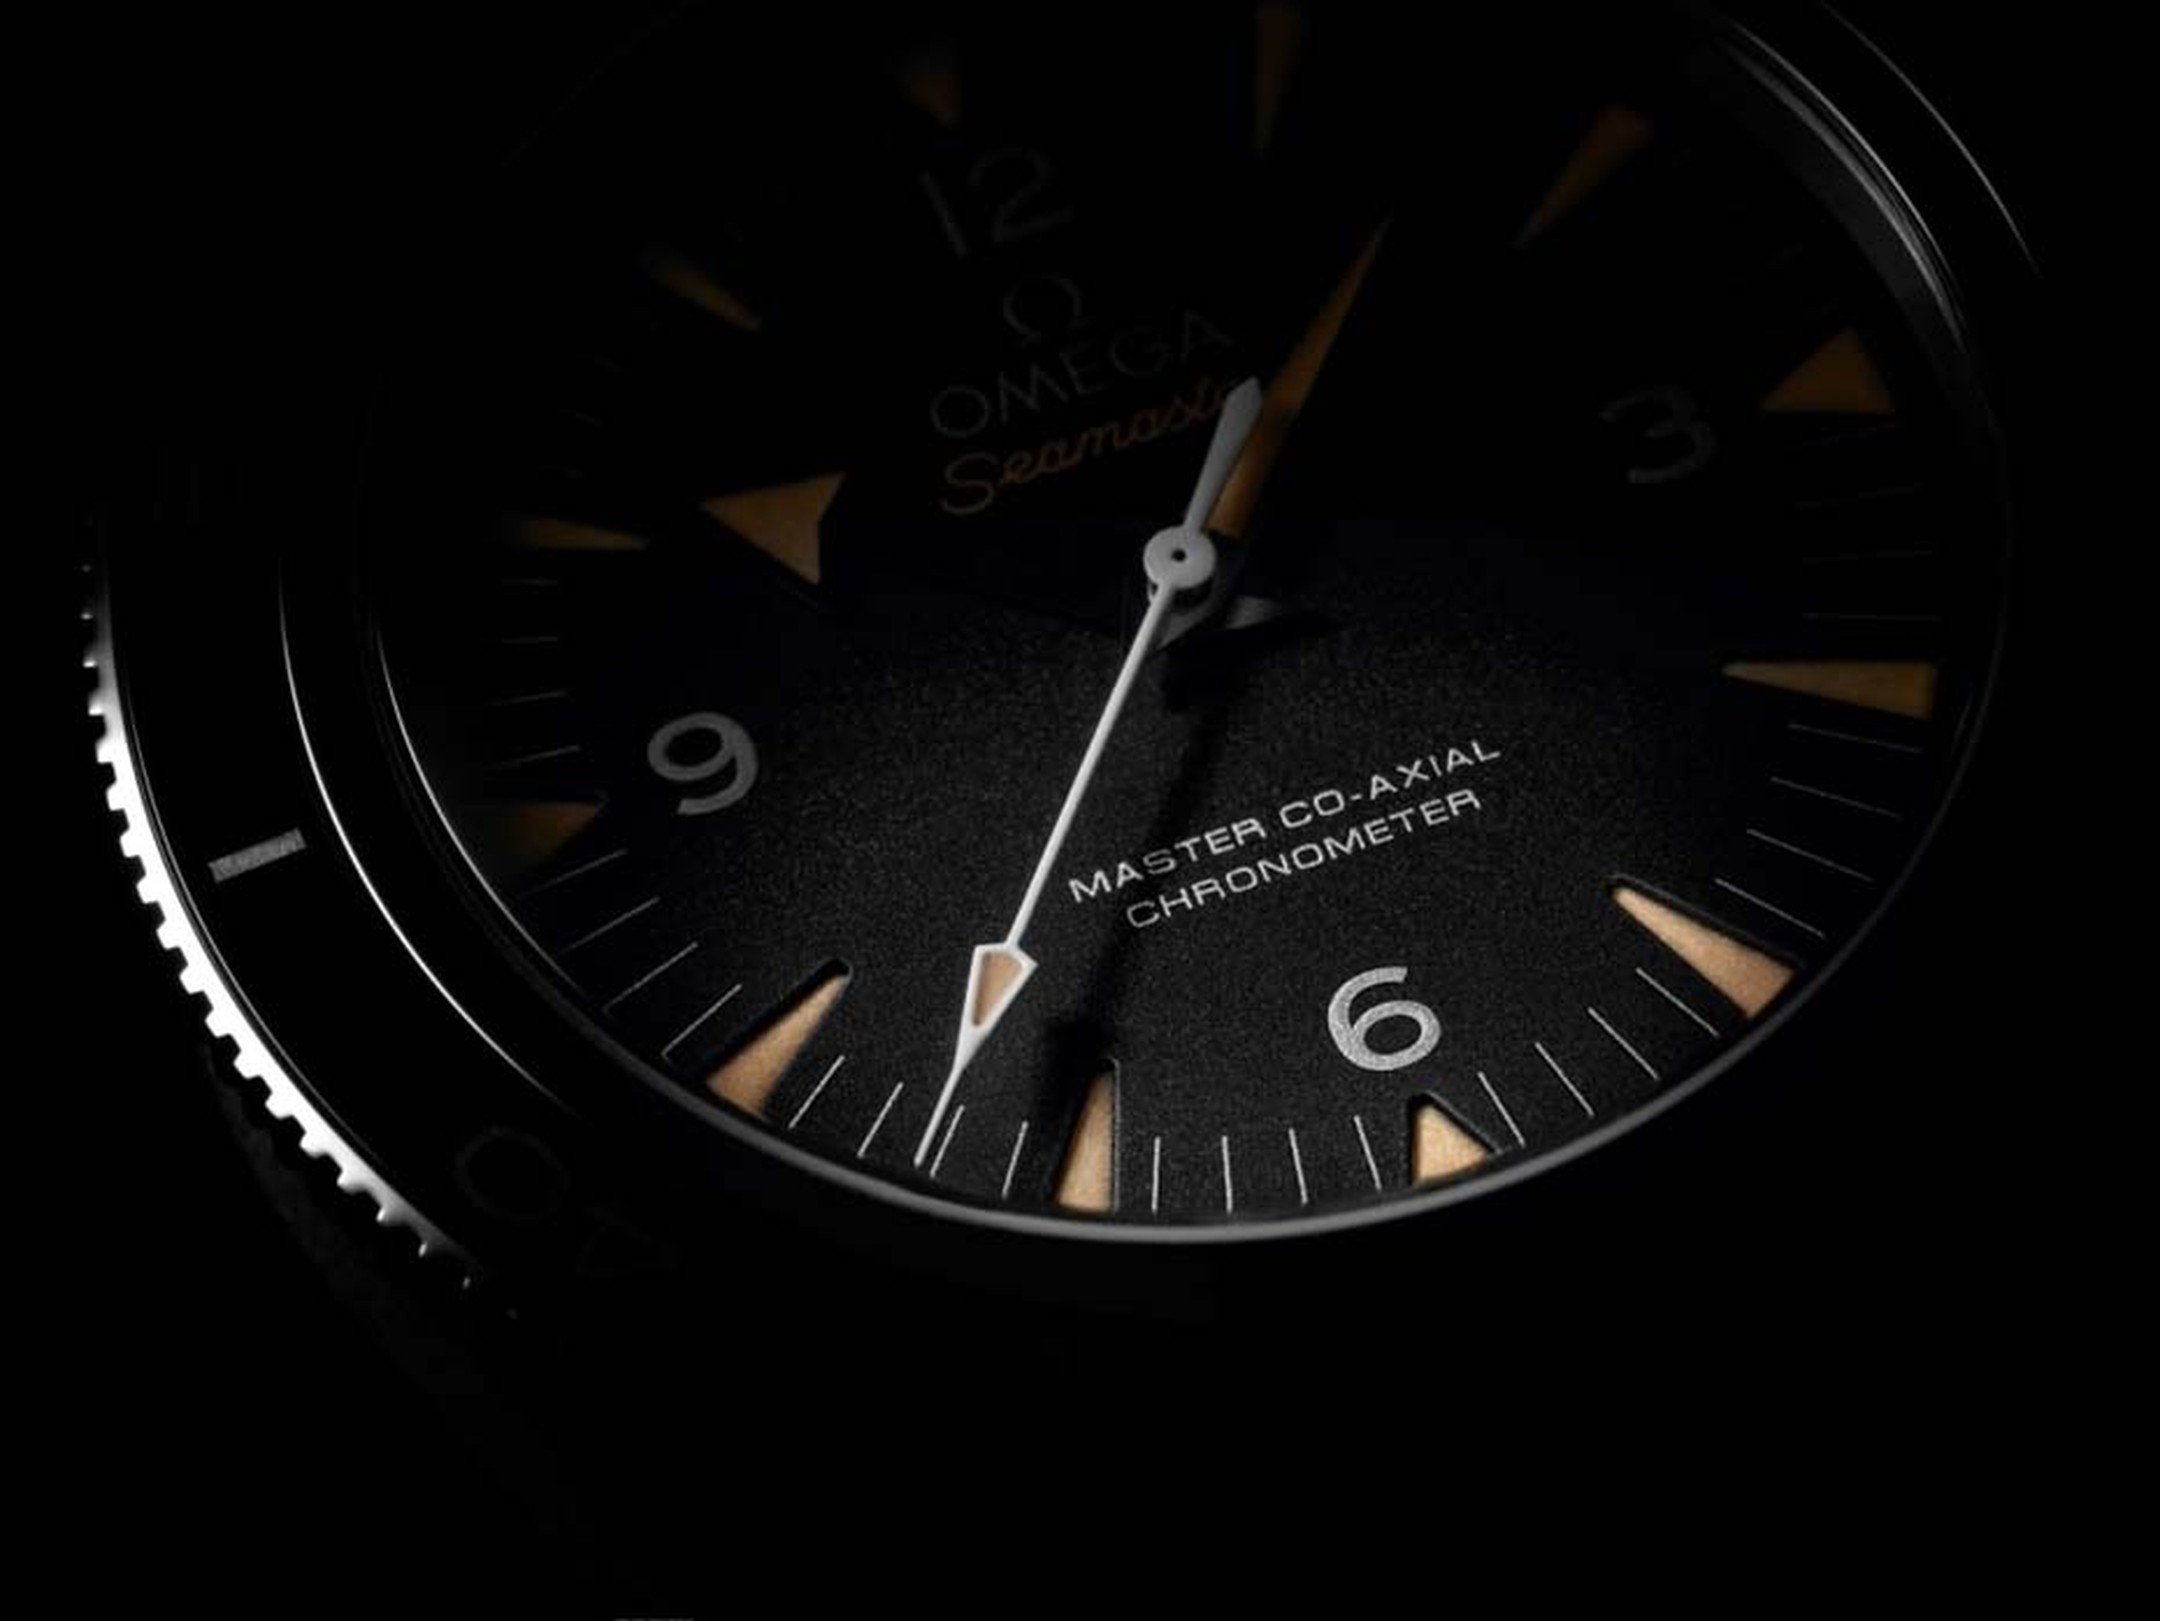 The Omega Seamaster 300 Master Co-Axial 41mm watch features a black sandblasted dial which offsets the beige vintage SuperLumiNova hour markers.